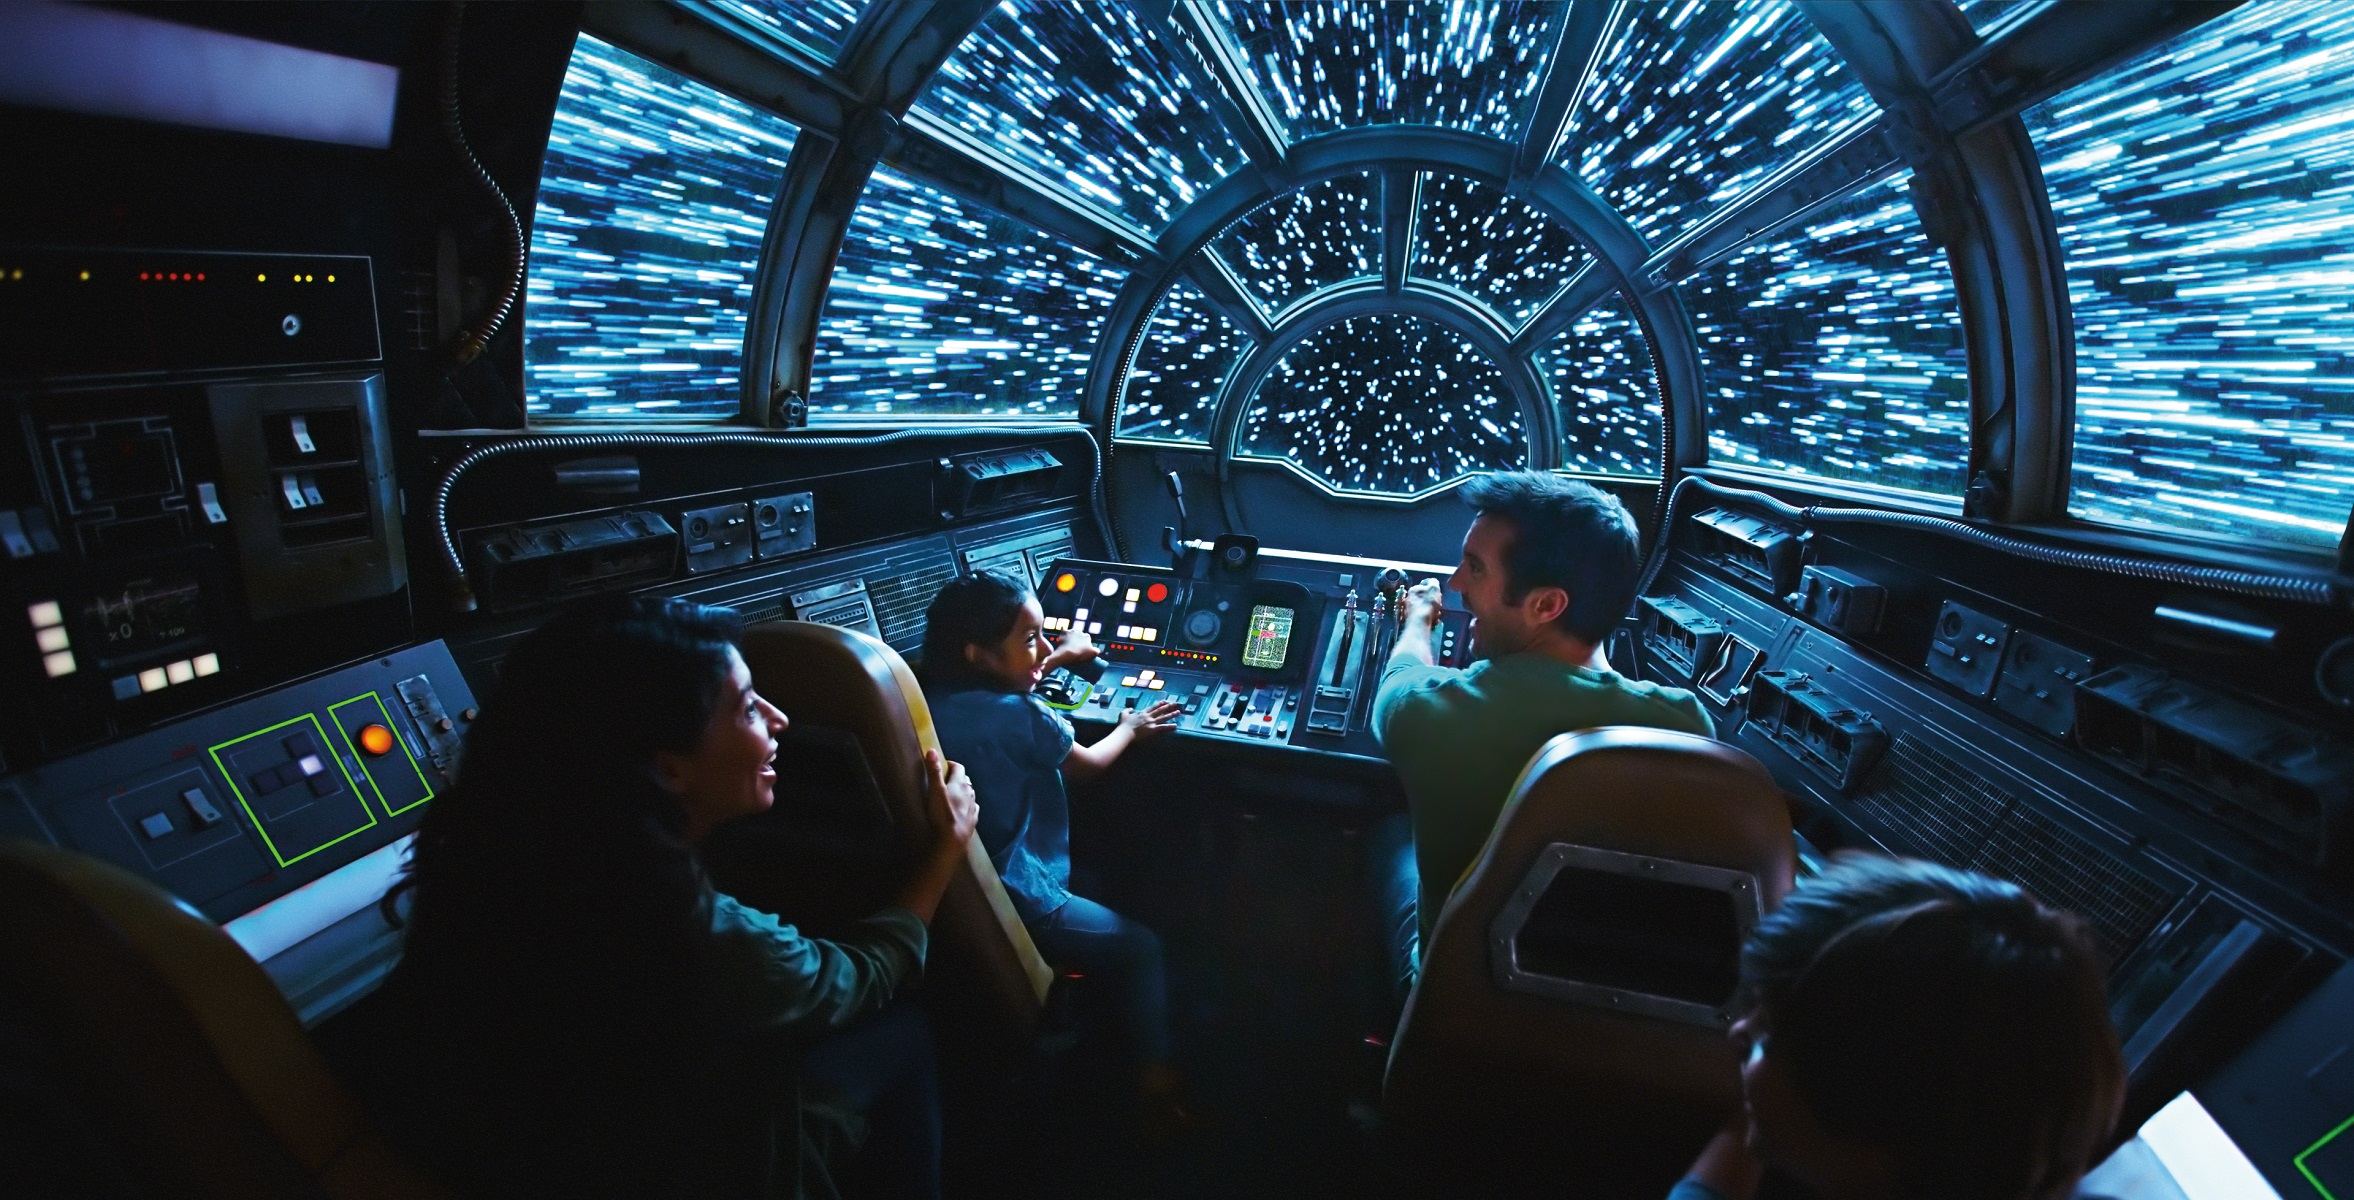 Star Wars Galaxys Edge Rise of the Resistance Attraction